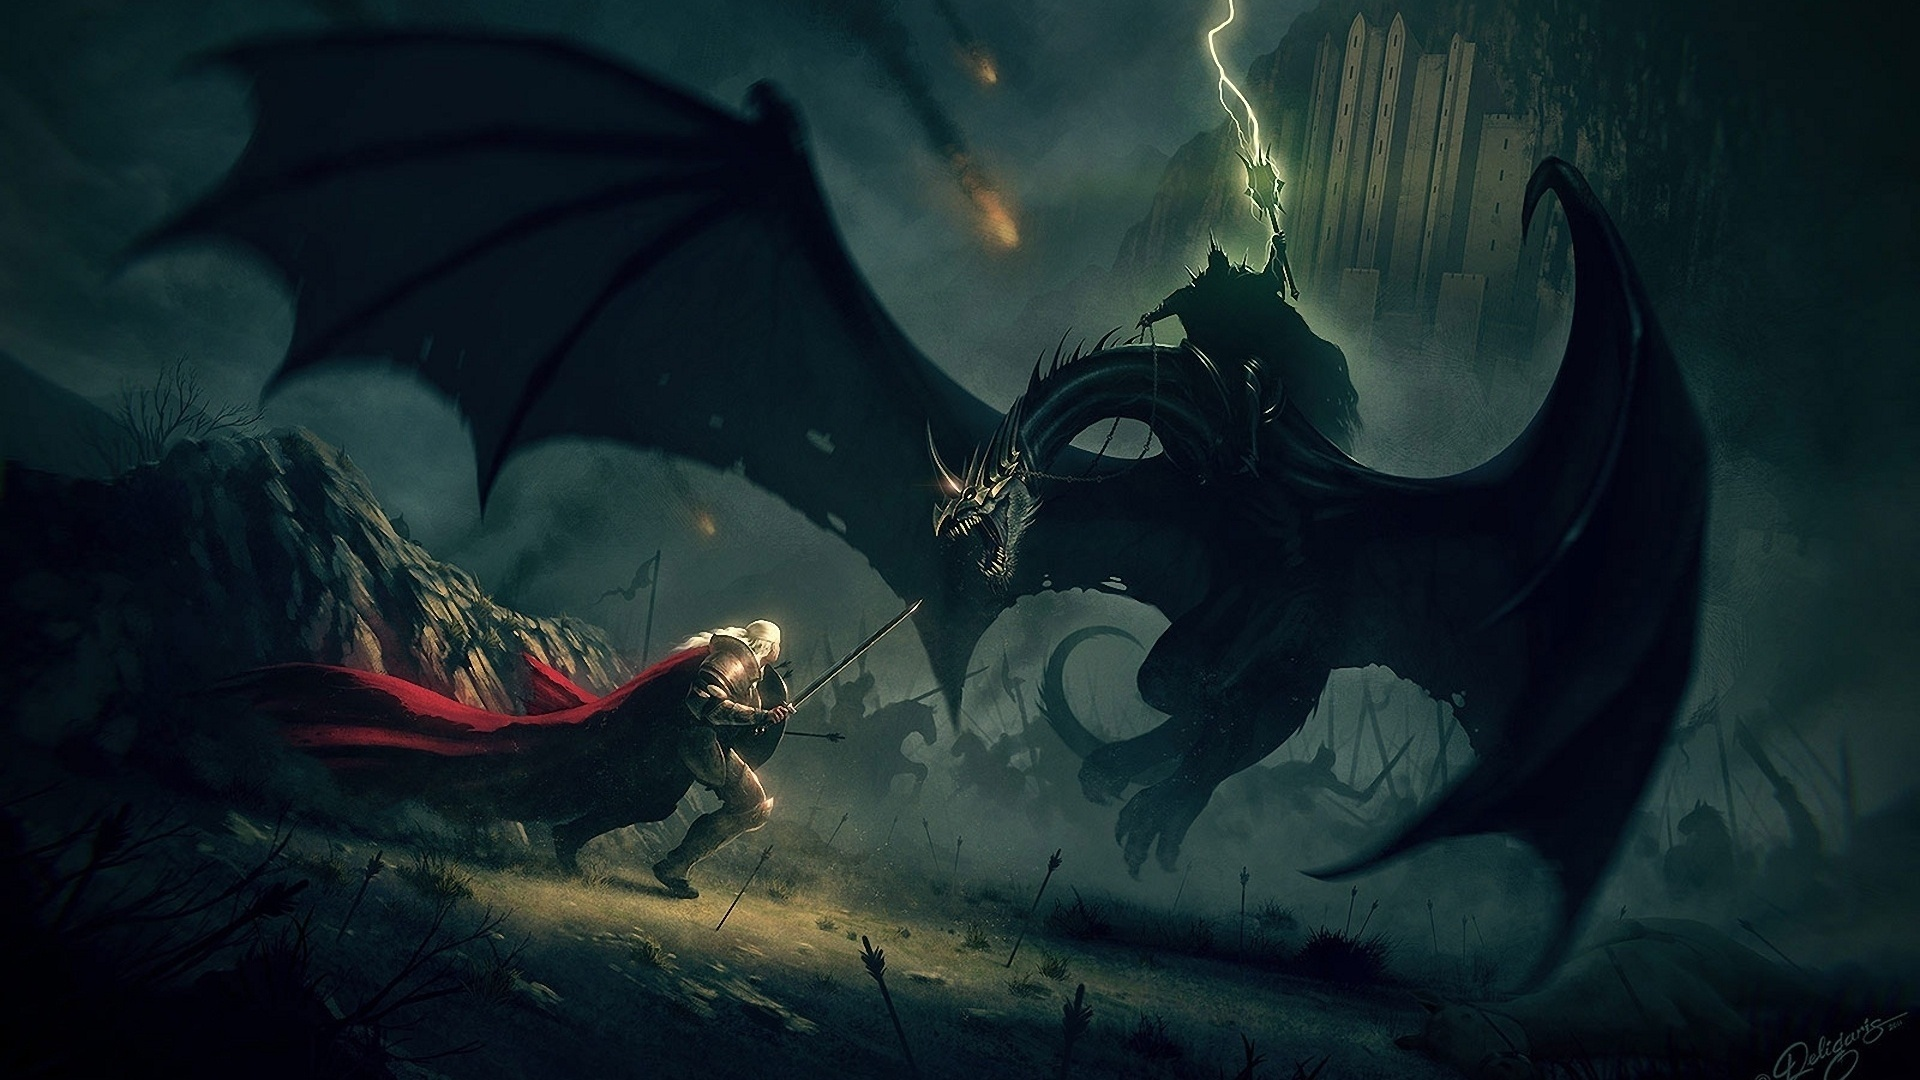 15647 download wallpaper Fantasy, Dragons screensavers and pictures for free